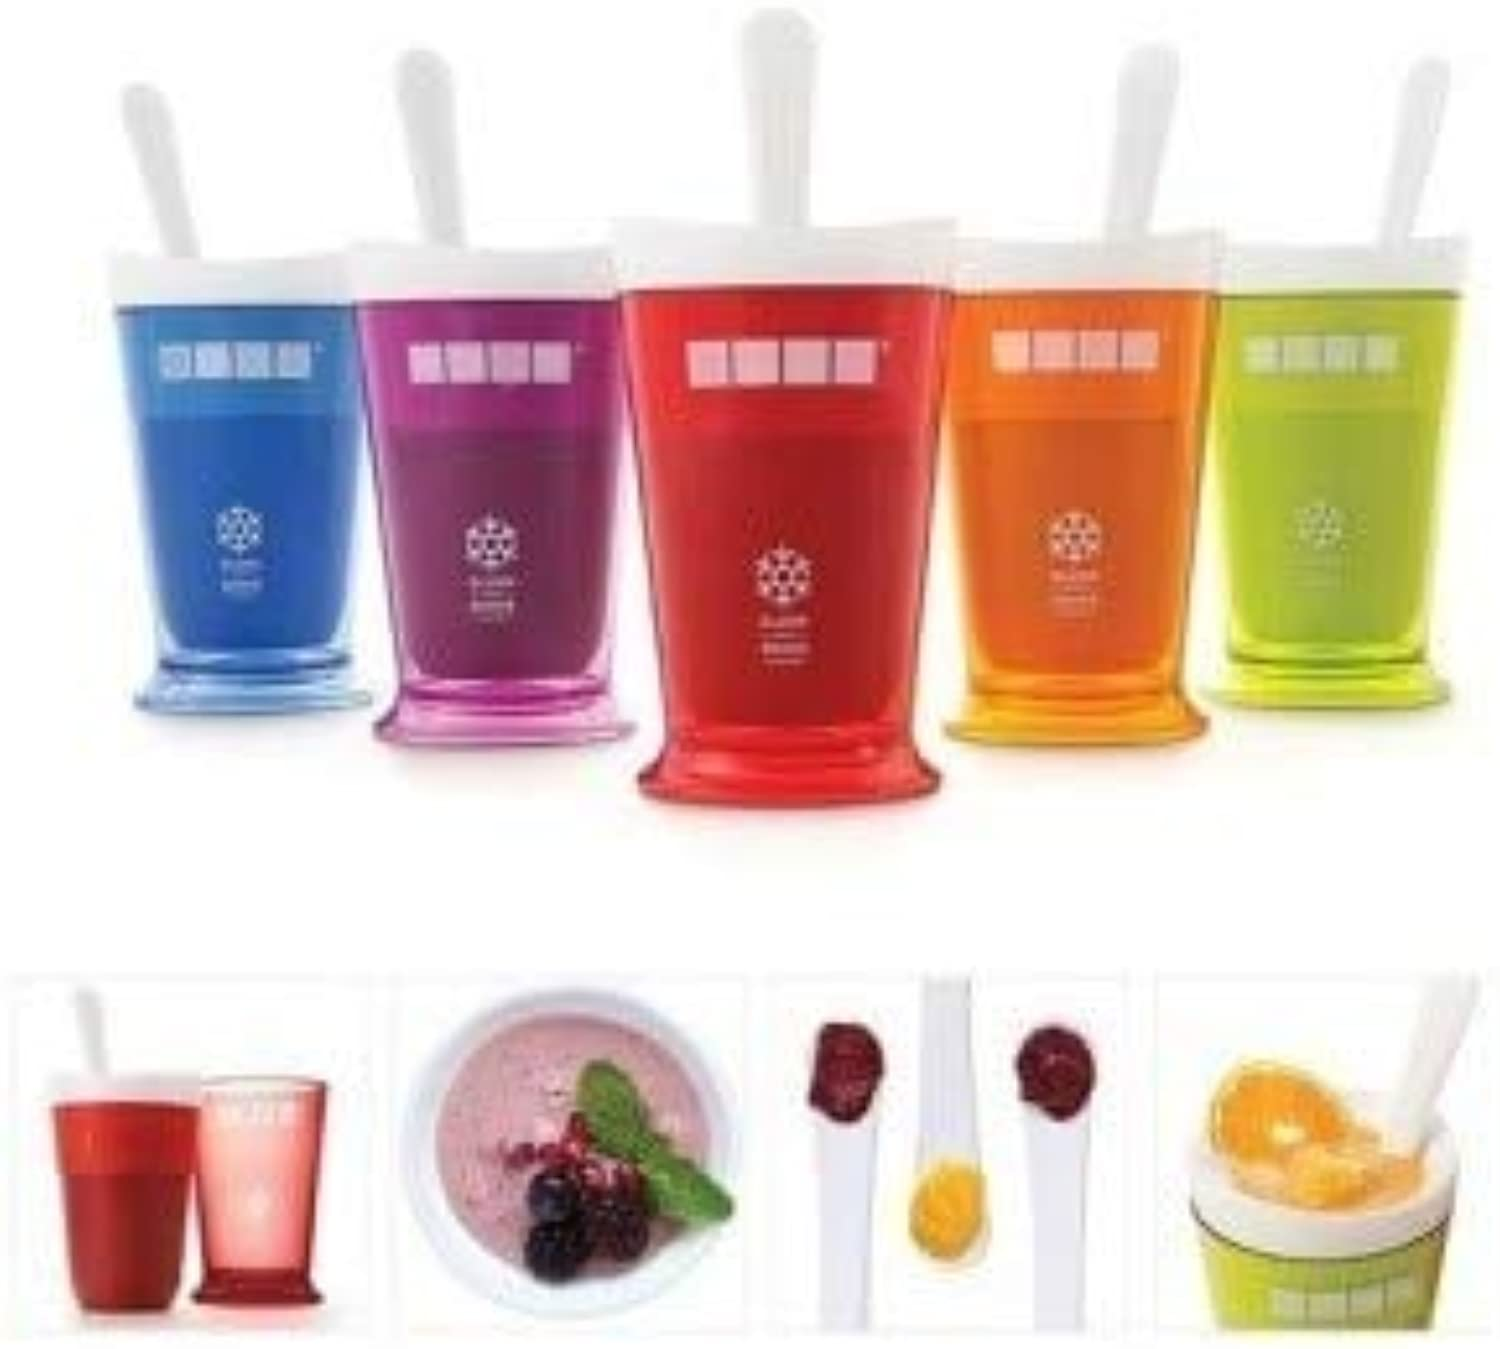 New Fruits Ju Cup Fruits Sand Slush & Shake Maker Slushy Milkshake ie Cup Summer Easy   Purple